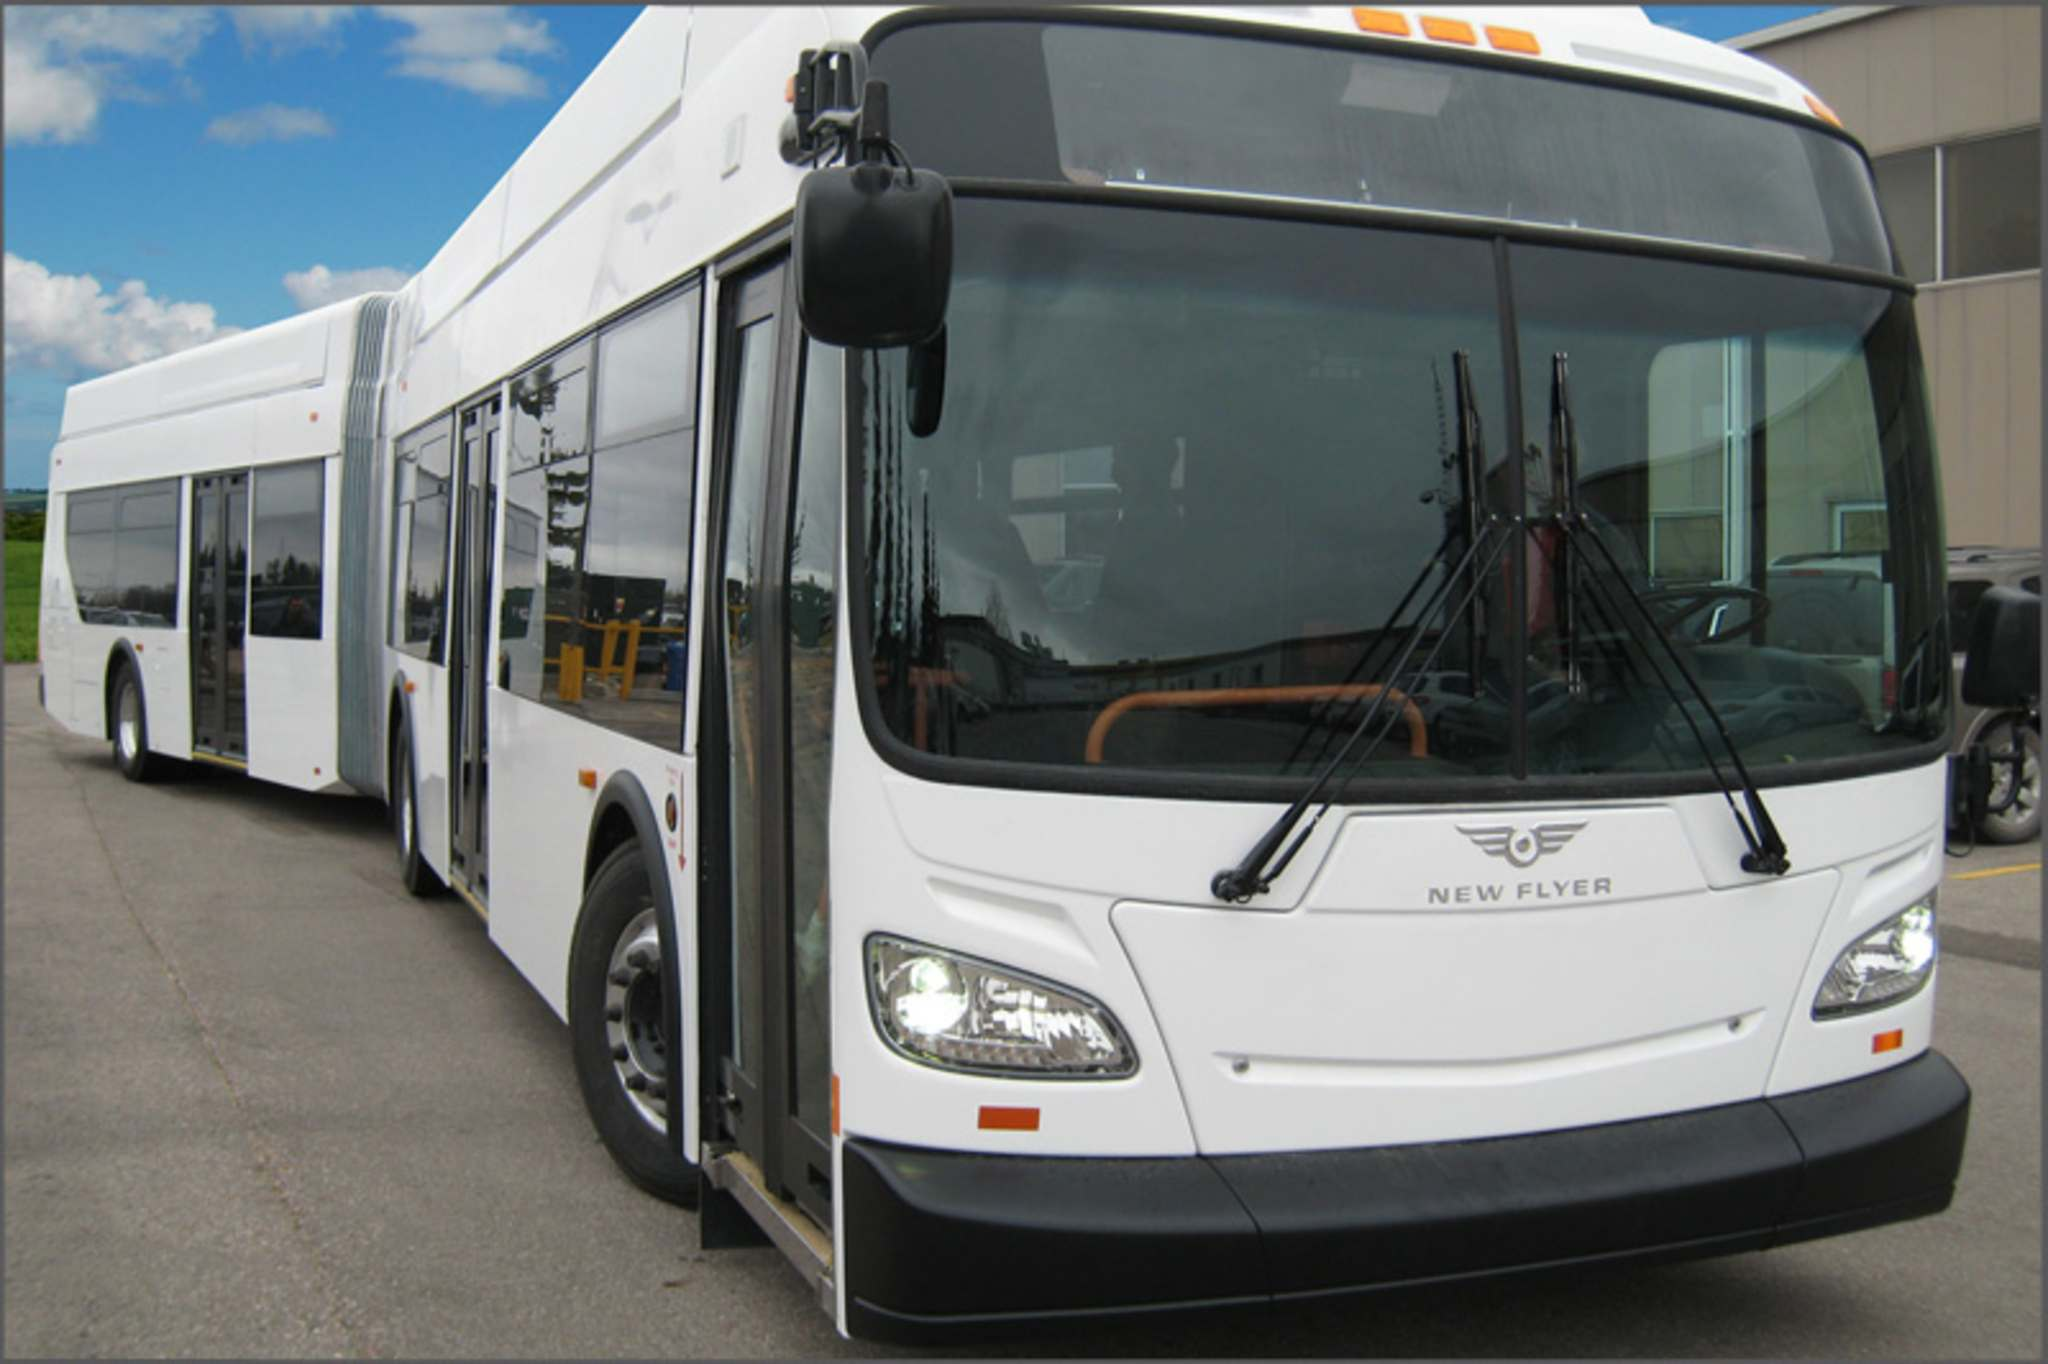 WINNIPEG FREE PRESS FILES</p><p>Because the articulated buses are longer, their turning radius is much larger than a regular bus and drivers need to be trained in how to operate them, said ATU Local 1505 president Aleem Chaudhary.